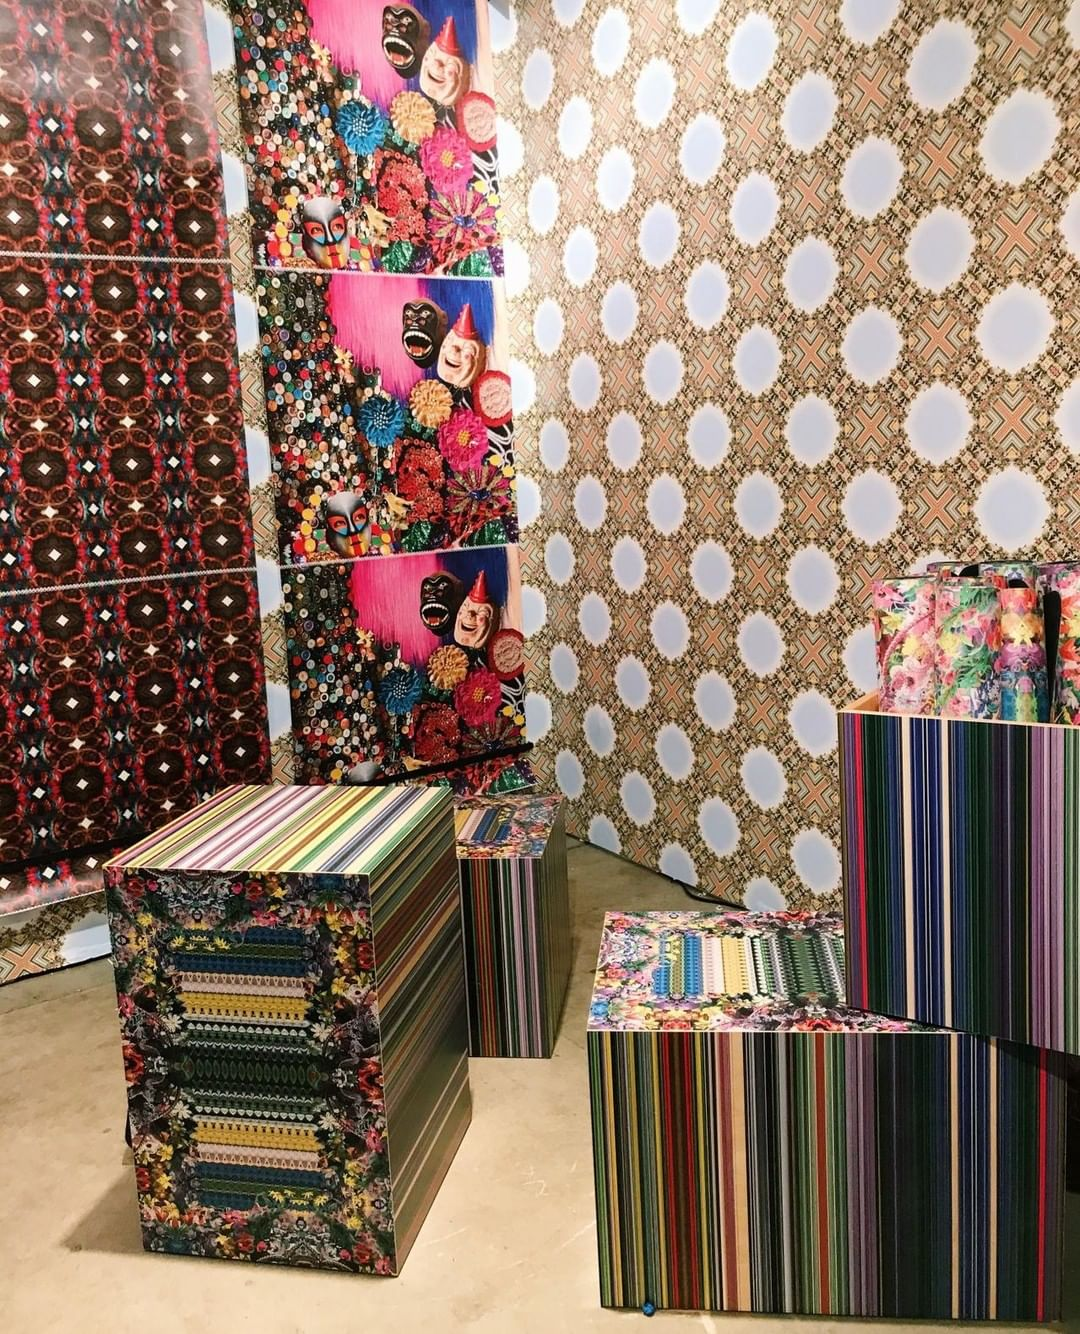 21chotels teamed up with Nick Cave and Bob Faust of Facility to create artist-designed contact sheets and yoga mats.